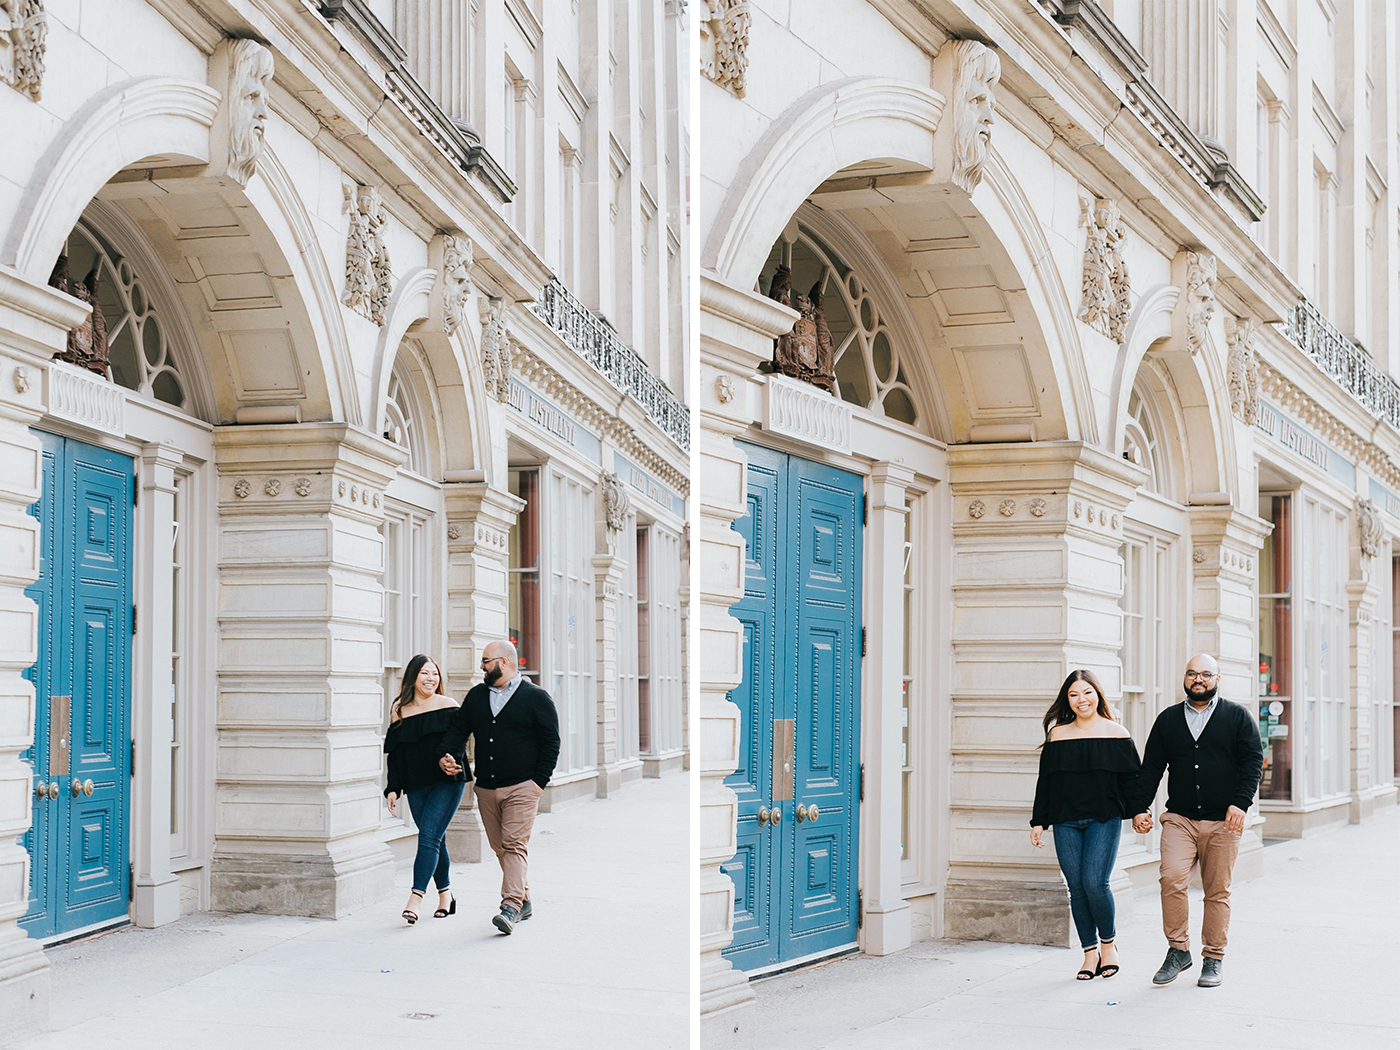 karen&arthur-engagement-at-st-lawrence-market-for-web-2